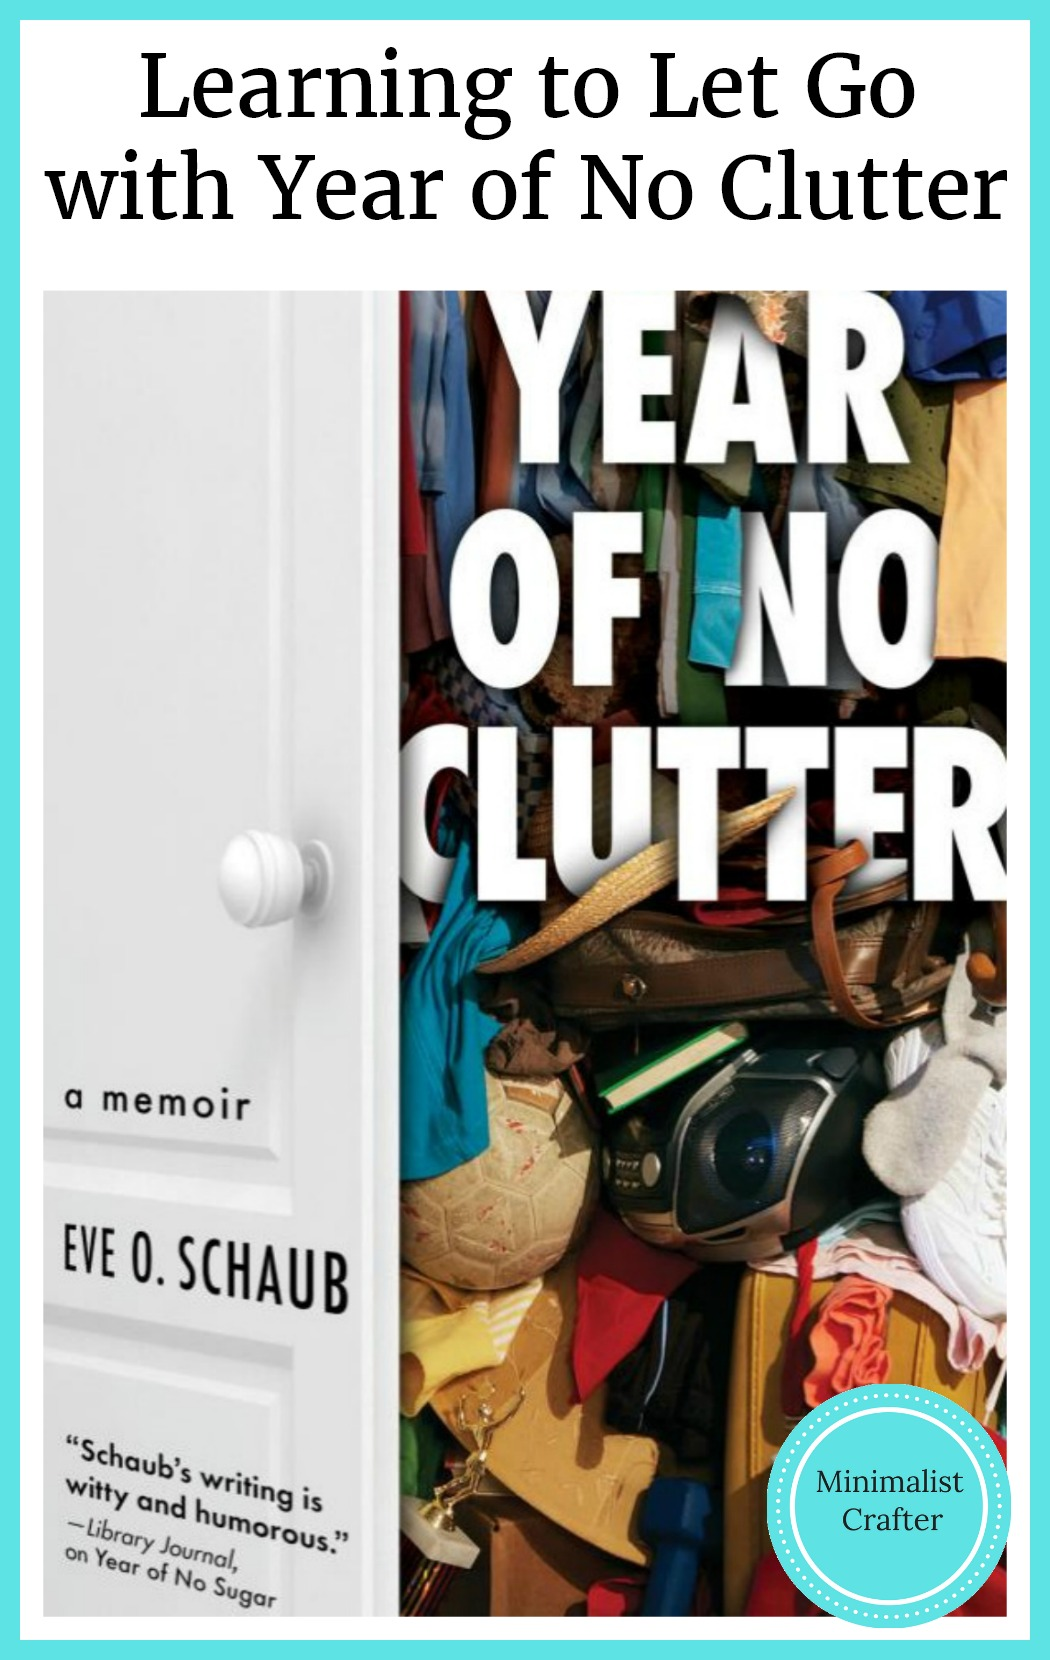 Learn to let go and clear out spaces with Year of No Clutter.